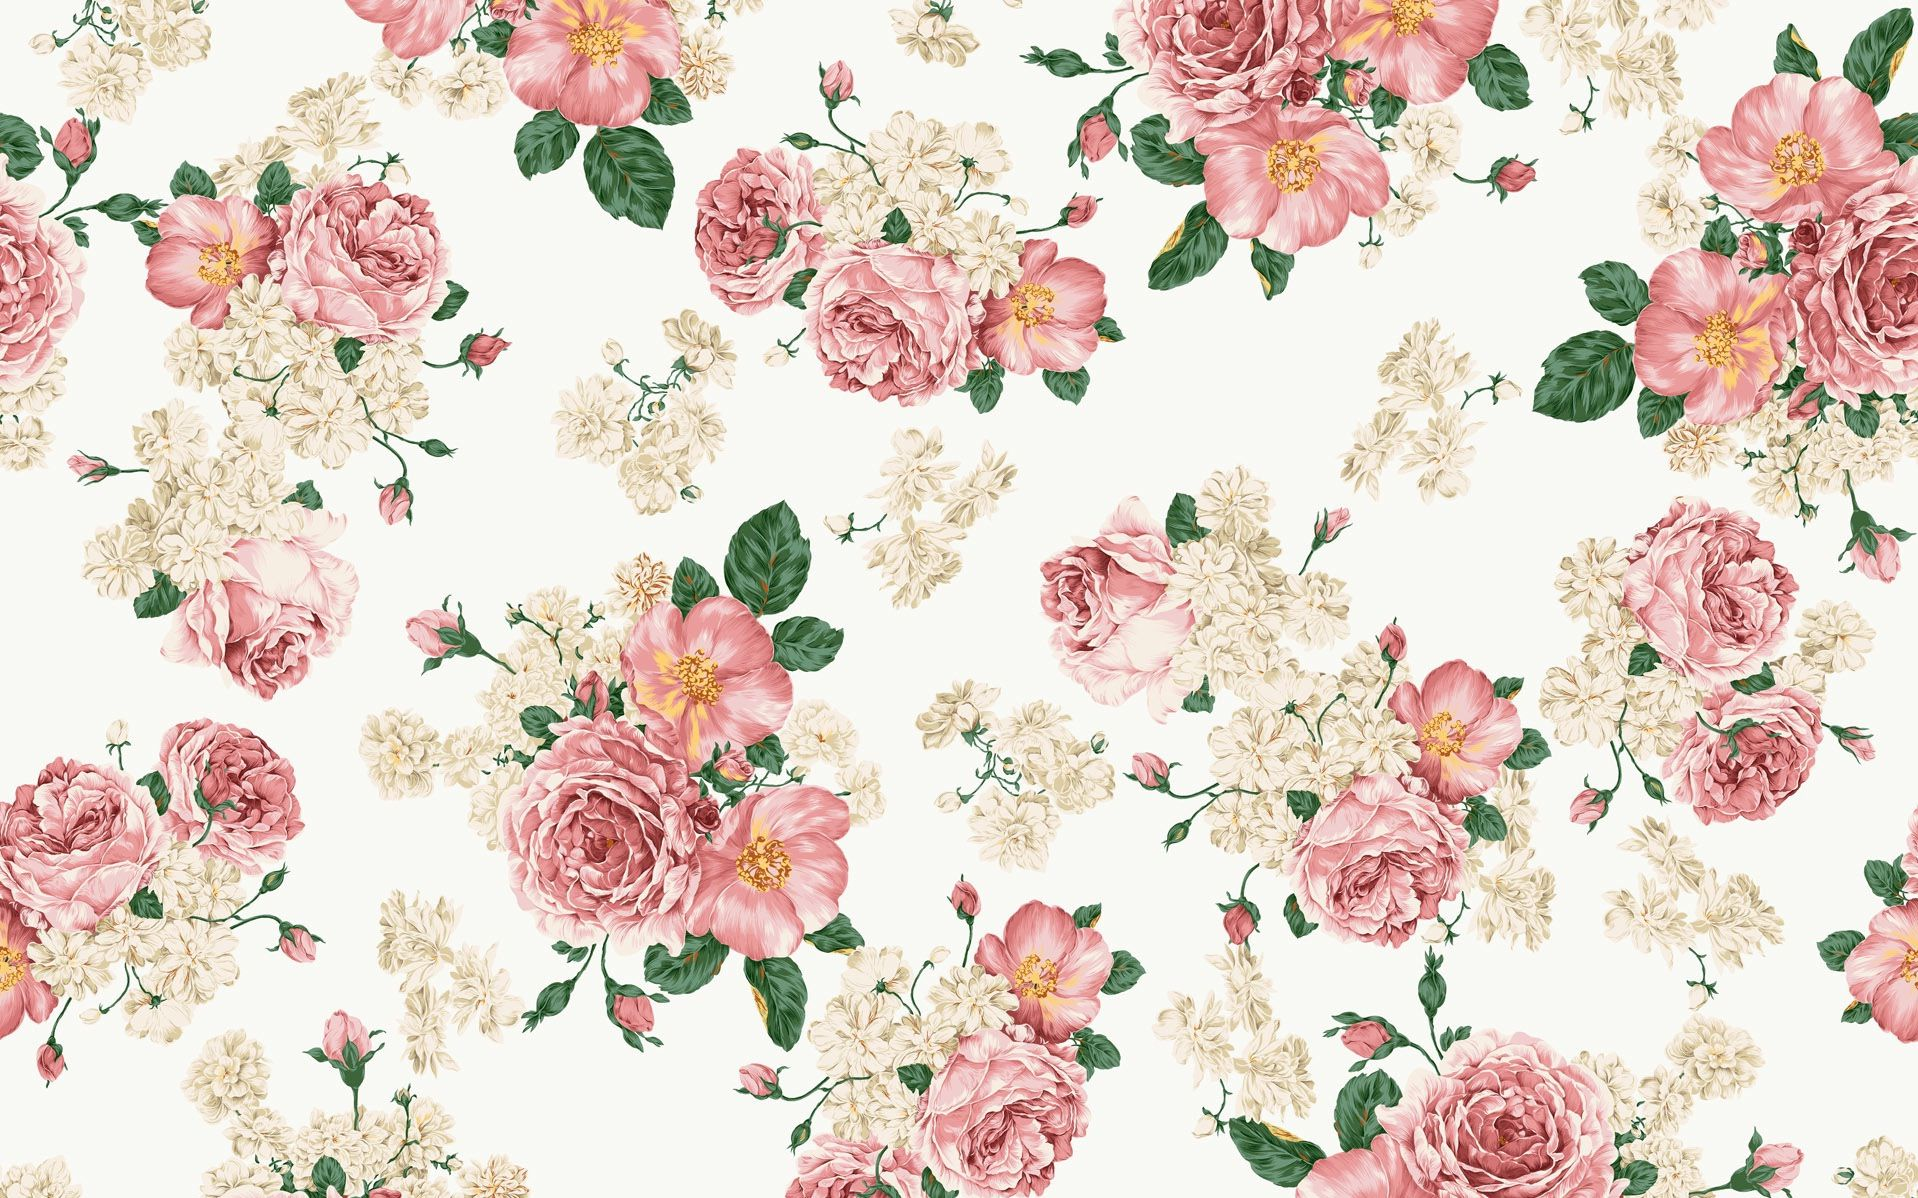 Vintage Flowers Part - 28: Vintage Flowers Wallpaper HD Px MB Flowers Spring Pink Spring And  Butterflies Vintage